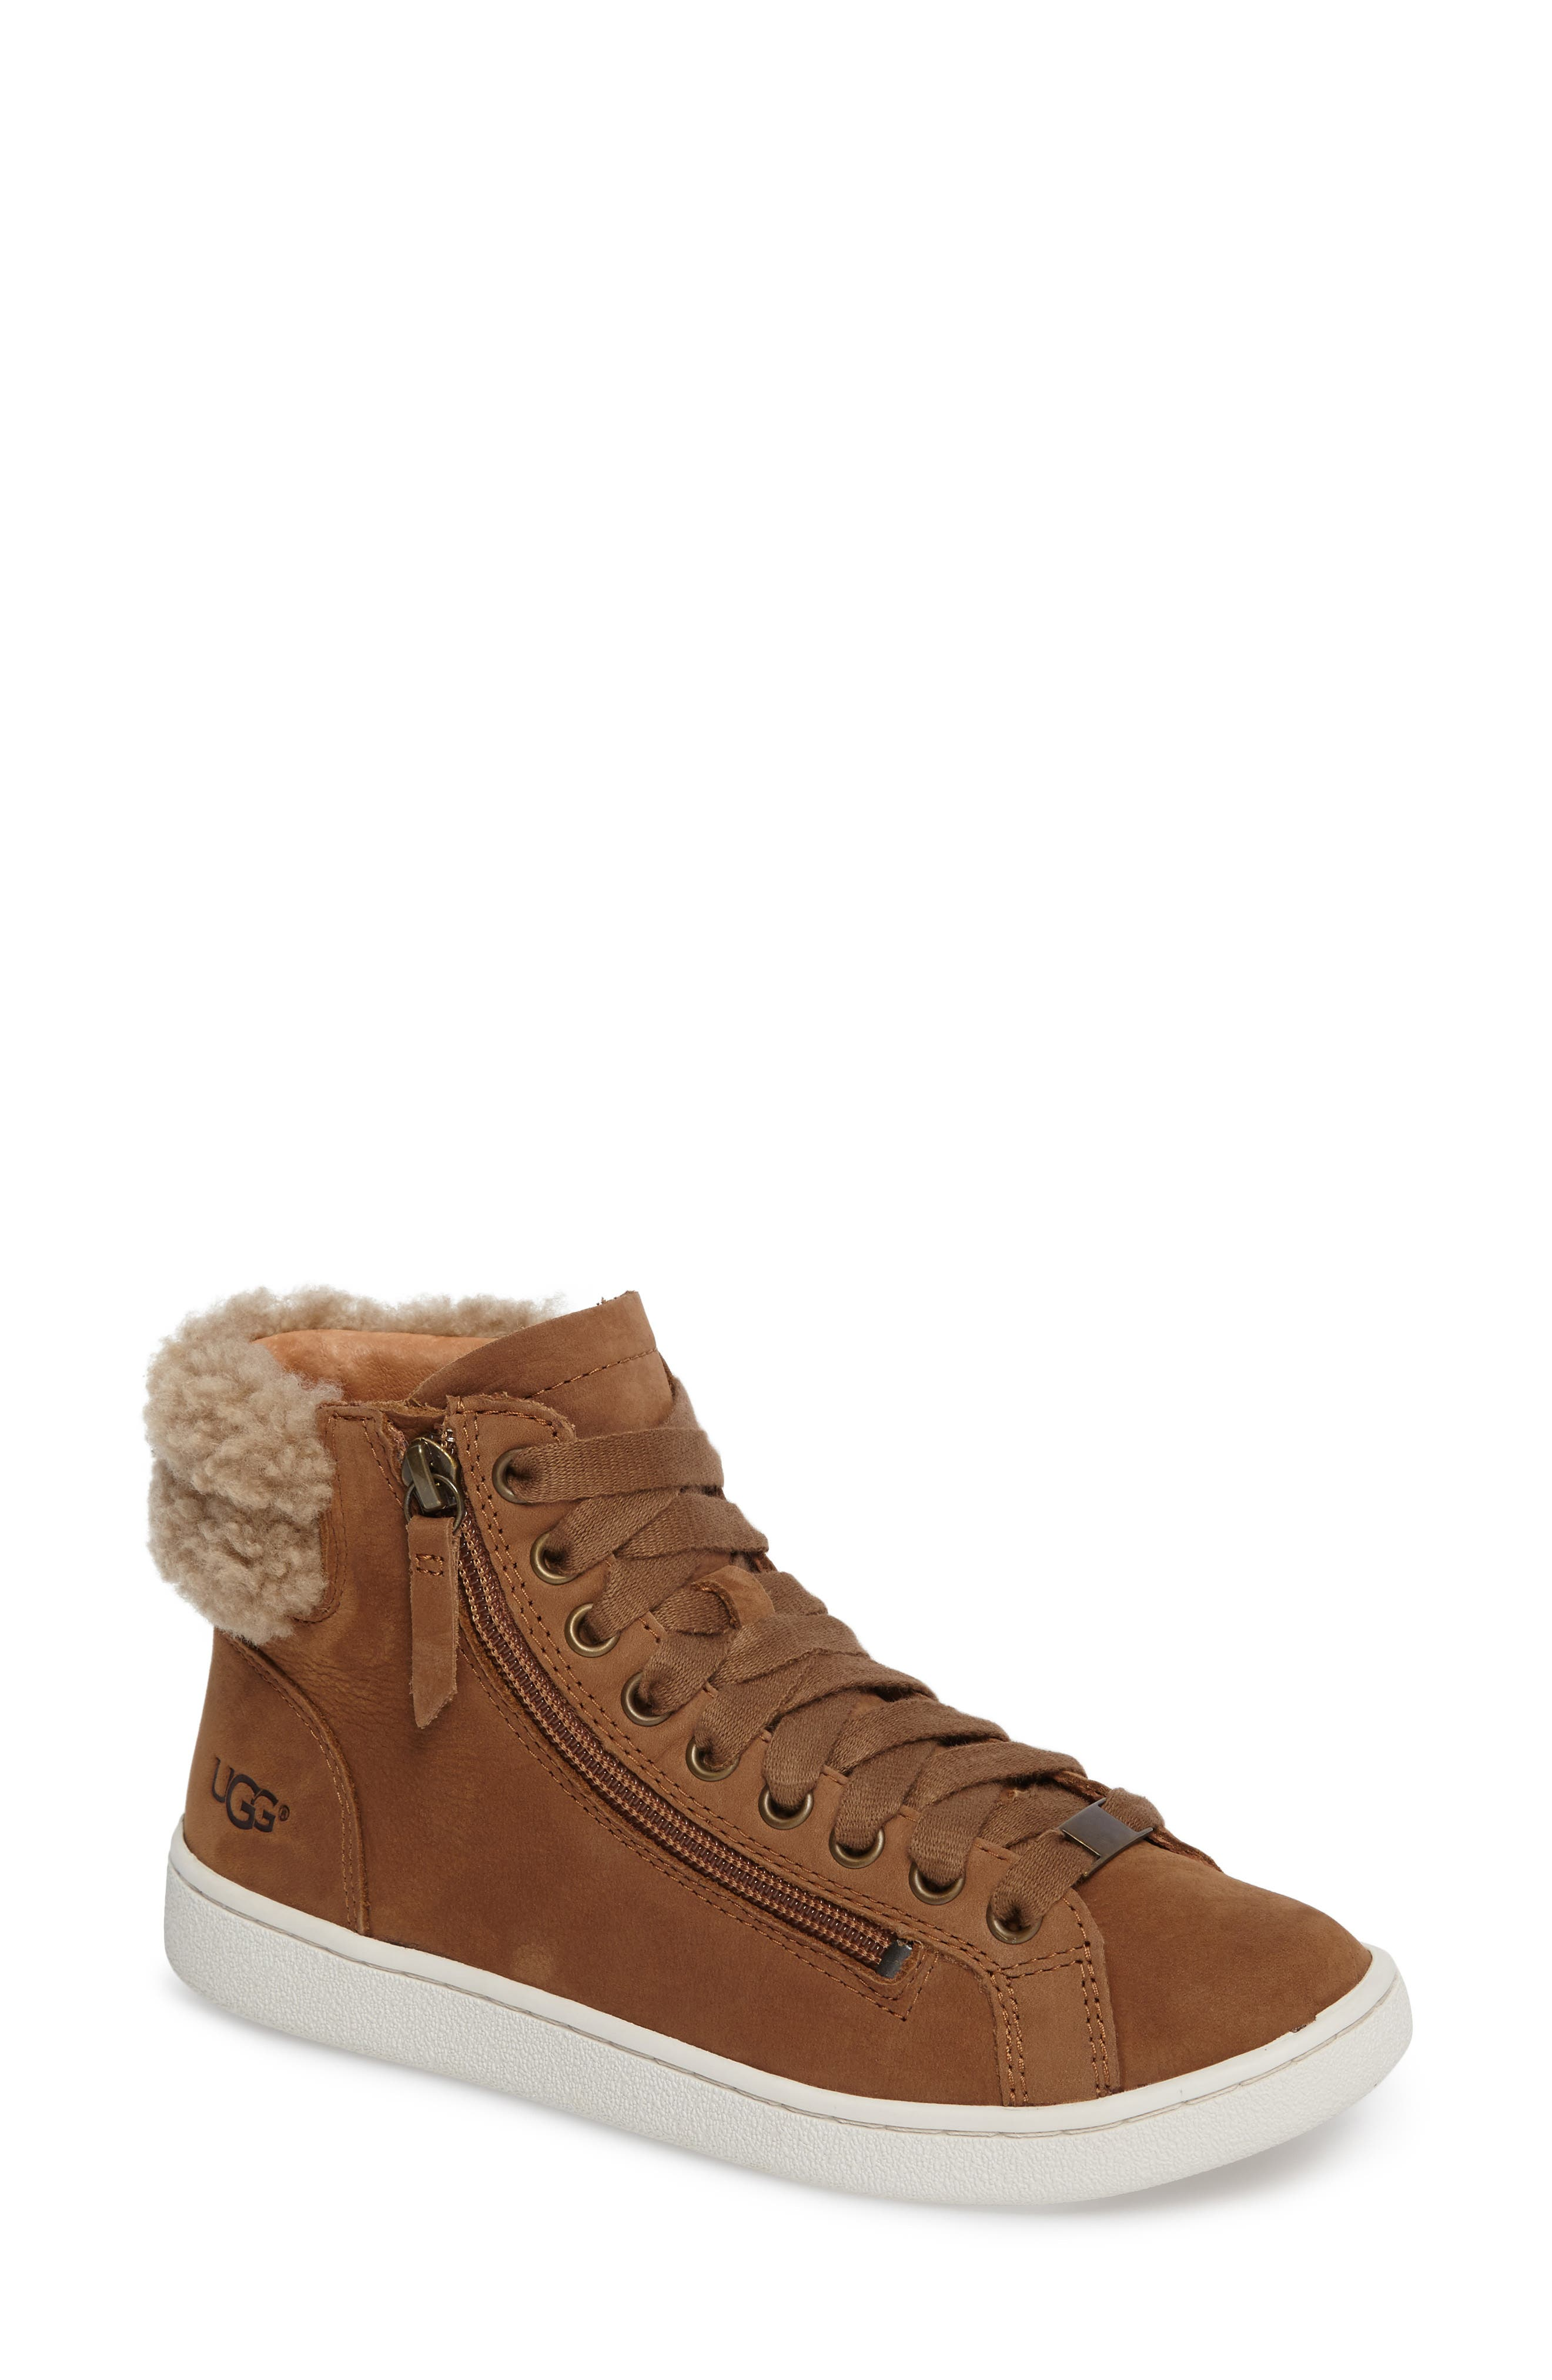 Olive Genuine Shearling Cuff Sneaker,                             Main thumbnail 1, color,                             219